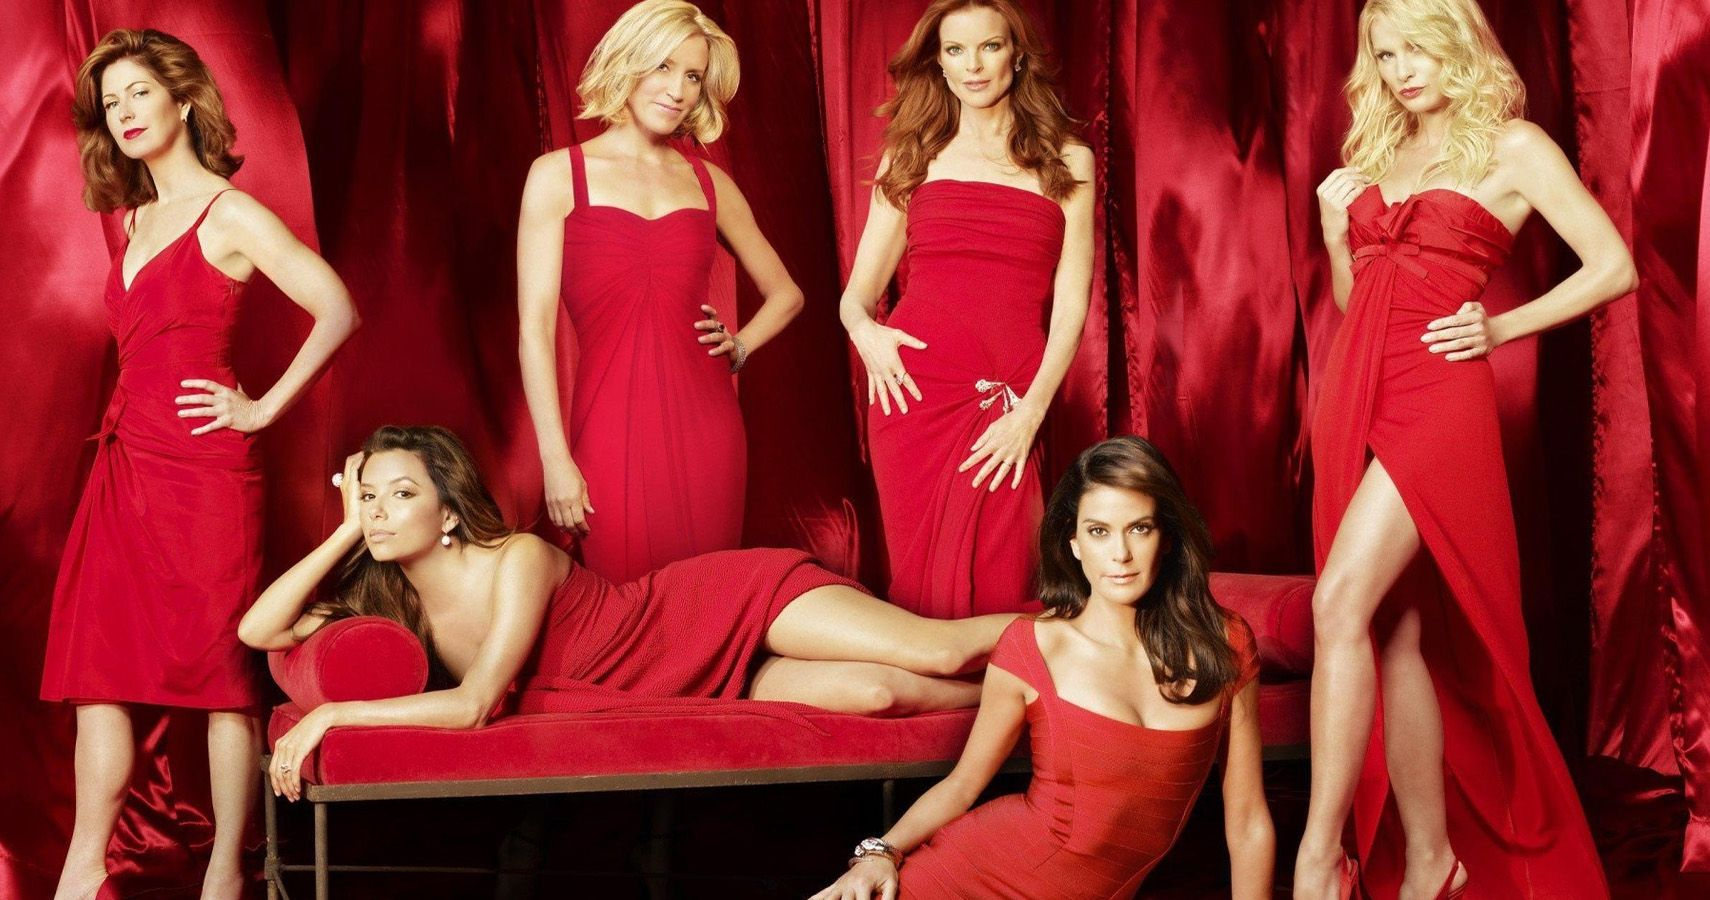 The 10 Most Emotional Deaths On Desperate Housewives Ranked Desperate housewives has seen several characters passing by since its premiere in 2004. the 10 most emotional deaths on